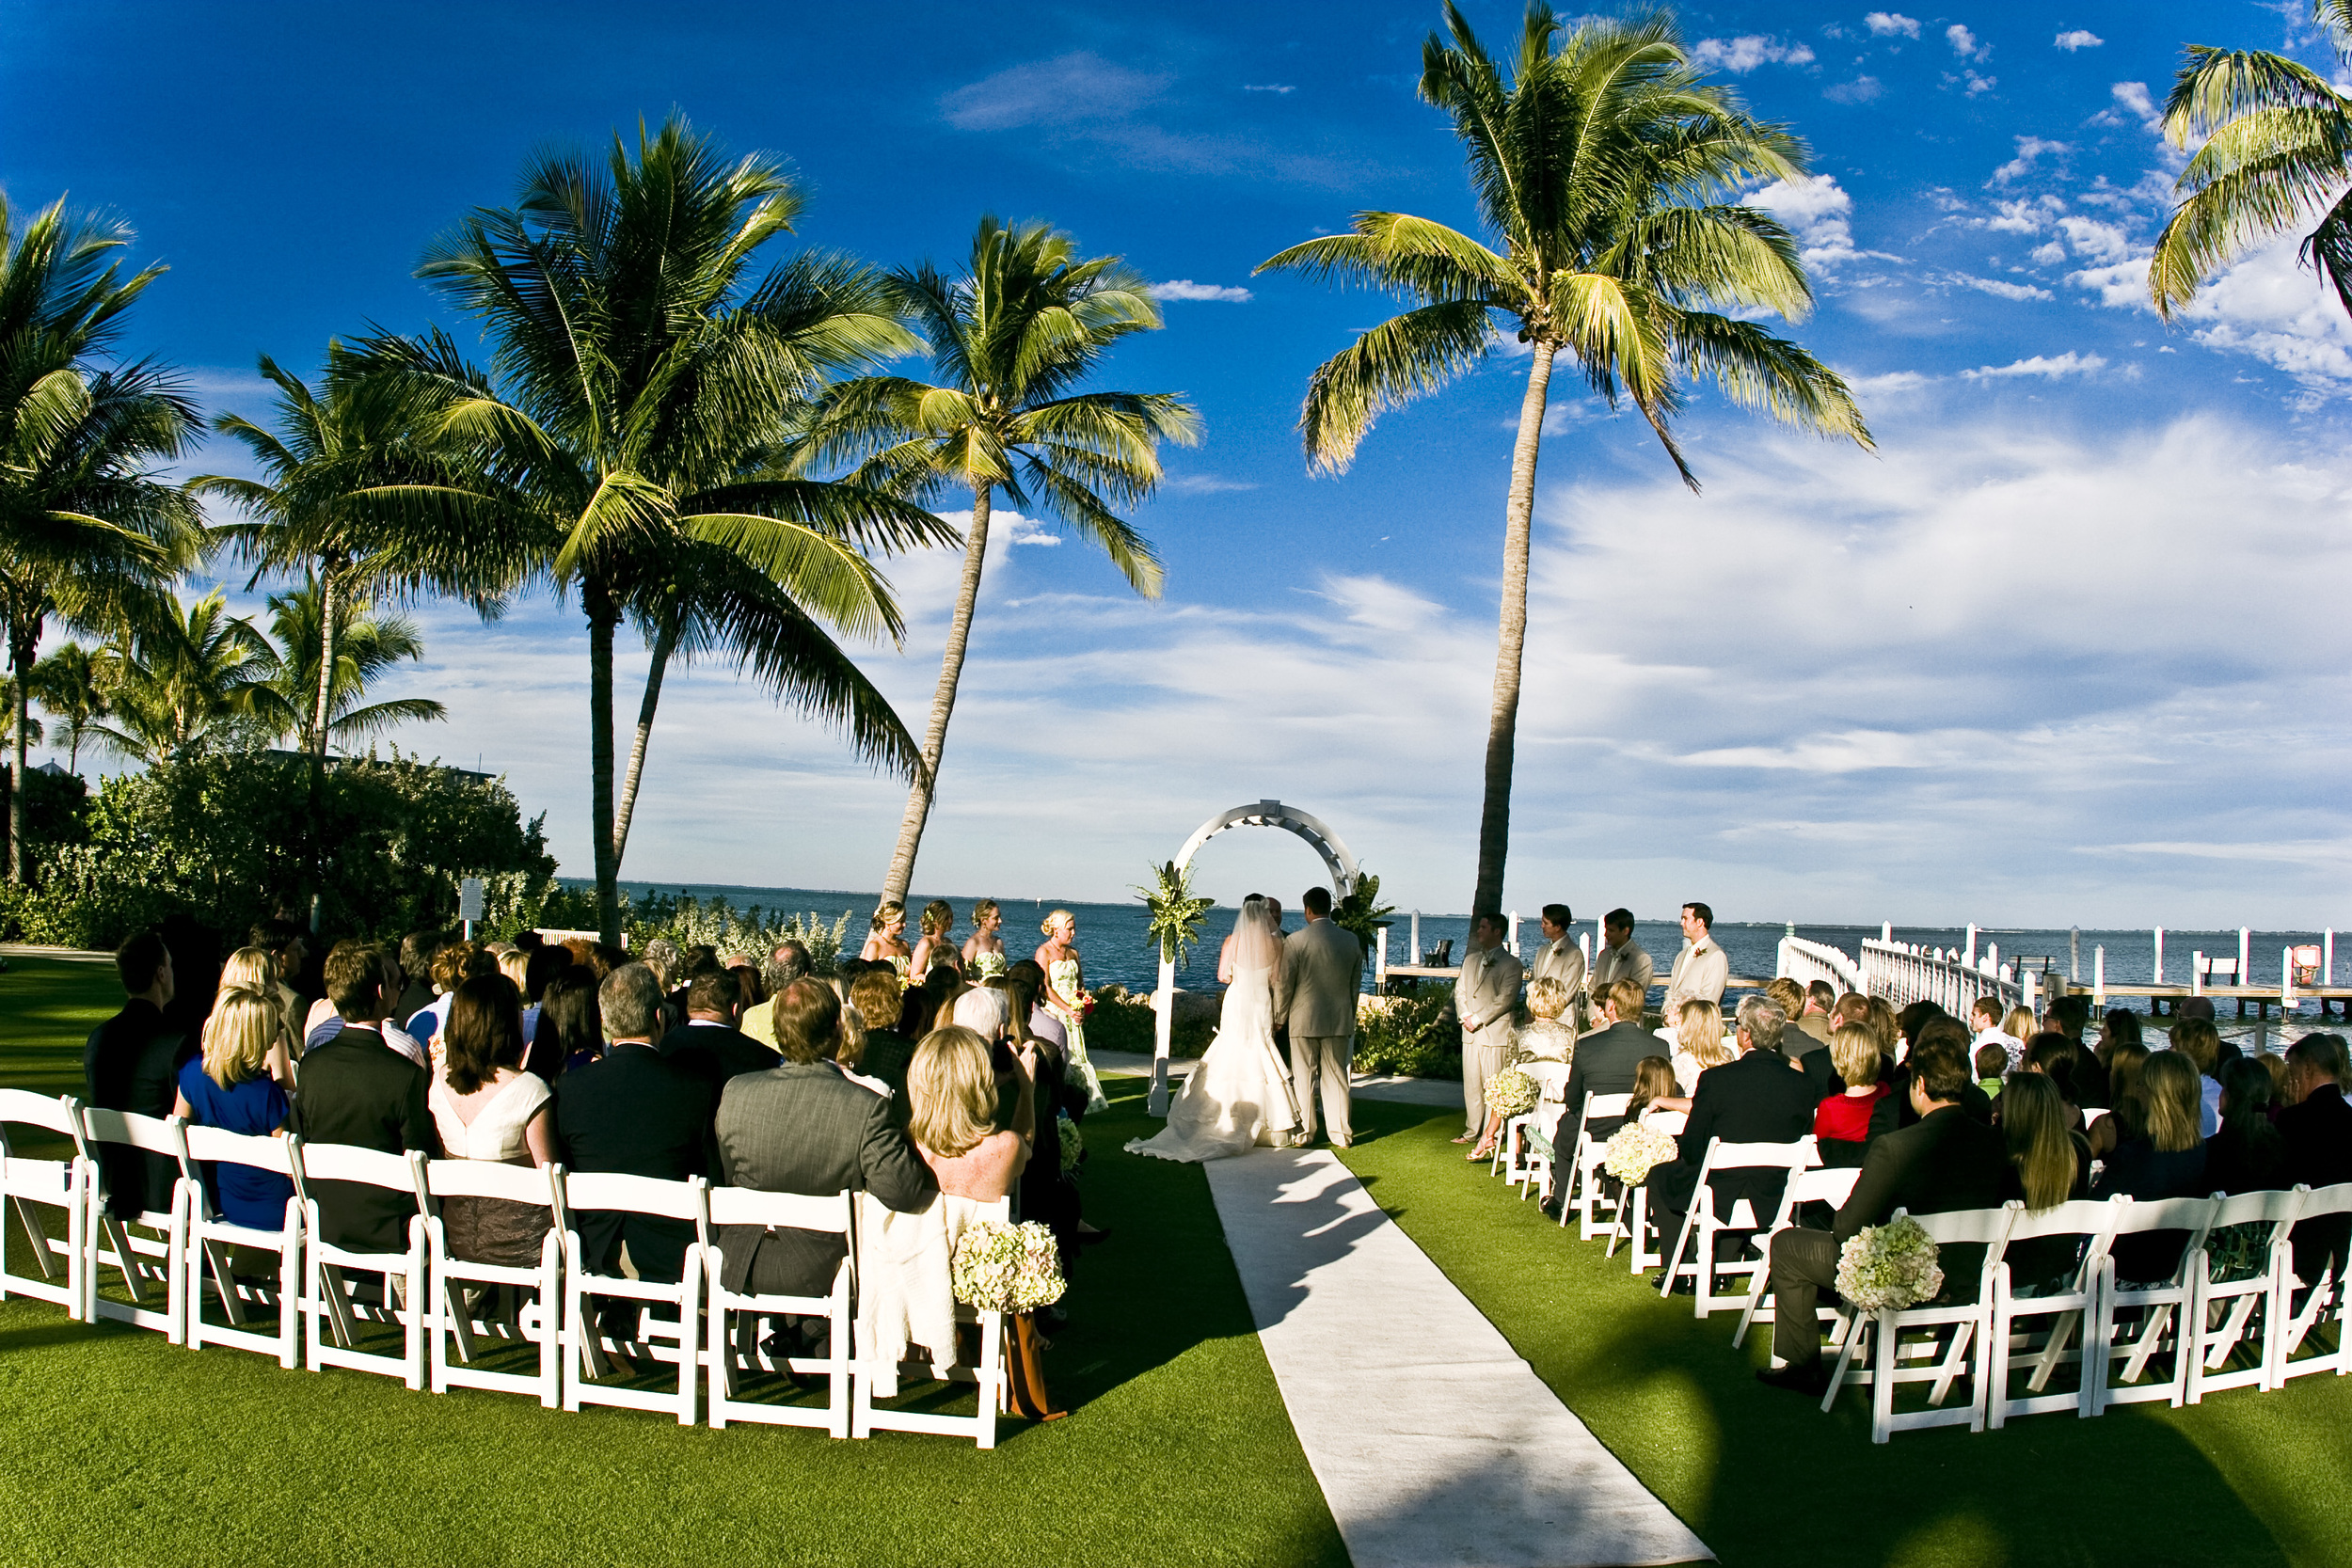 019_orlando_wedding_photographer_brian_adams_photographics.jpg